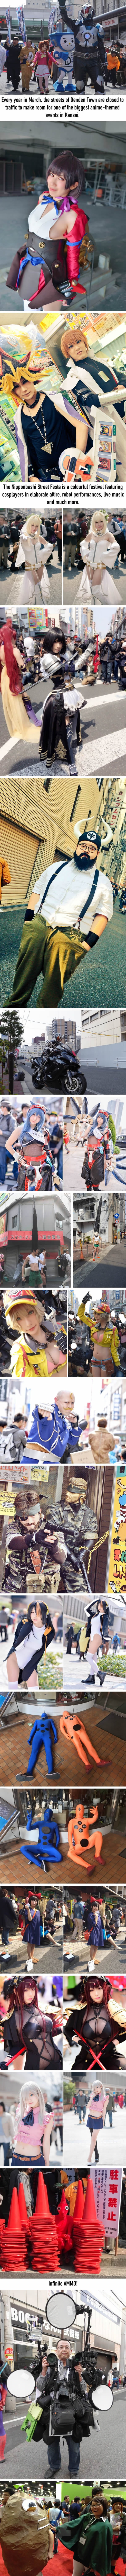 All the coolest cosplay from the annual Nipponbashi Street Festival 2017 in Osaka!